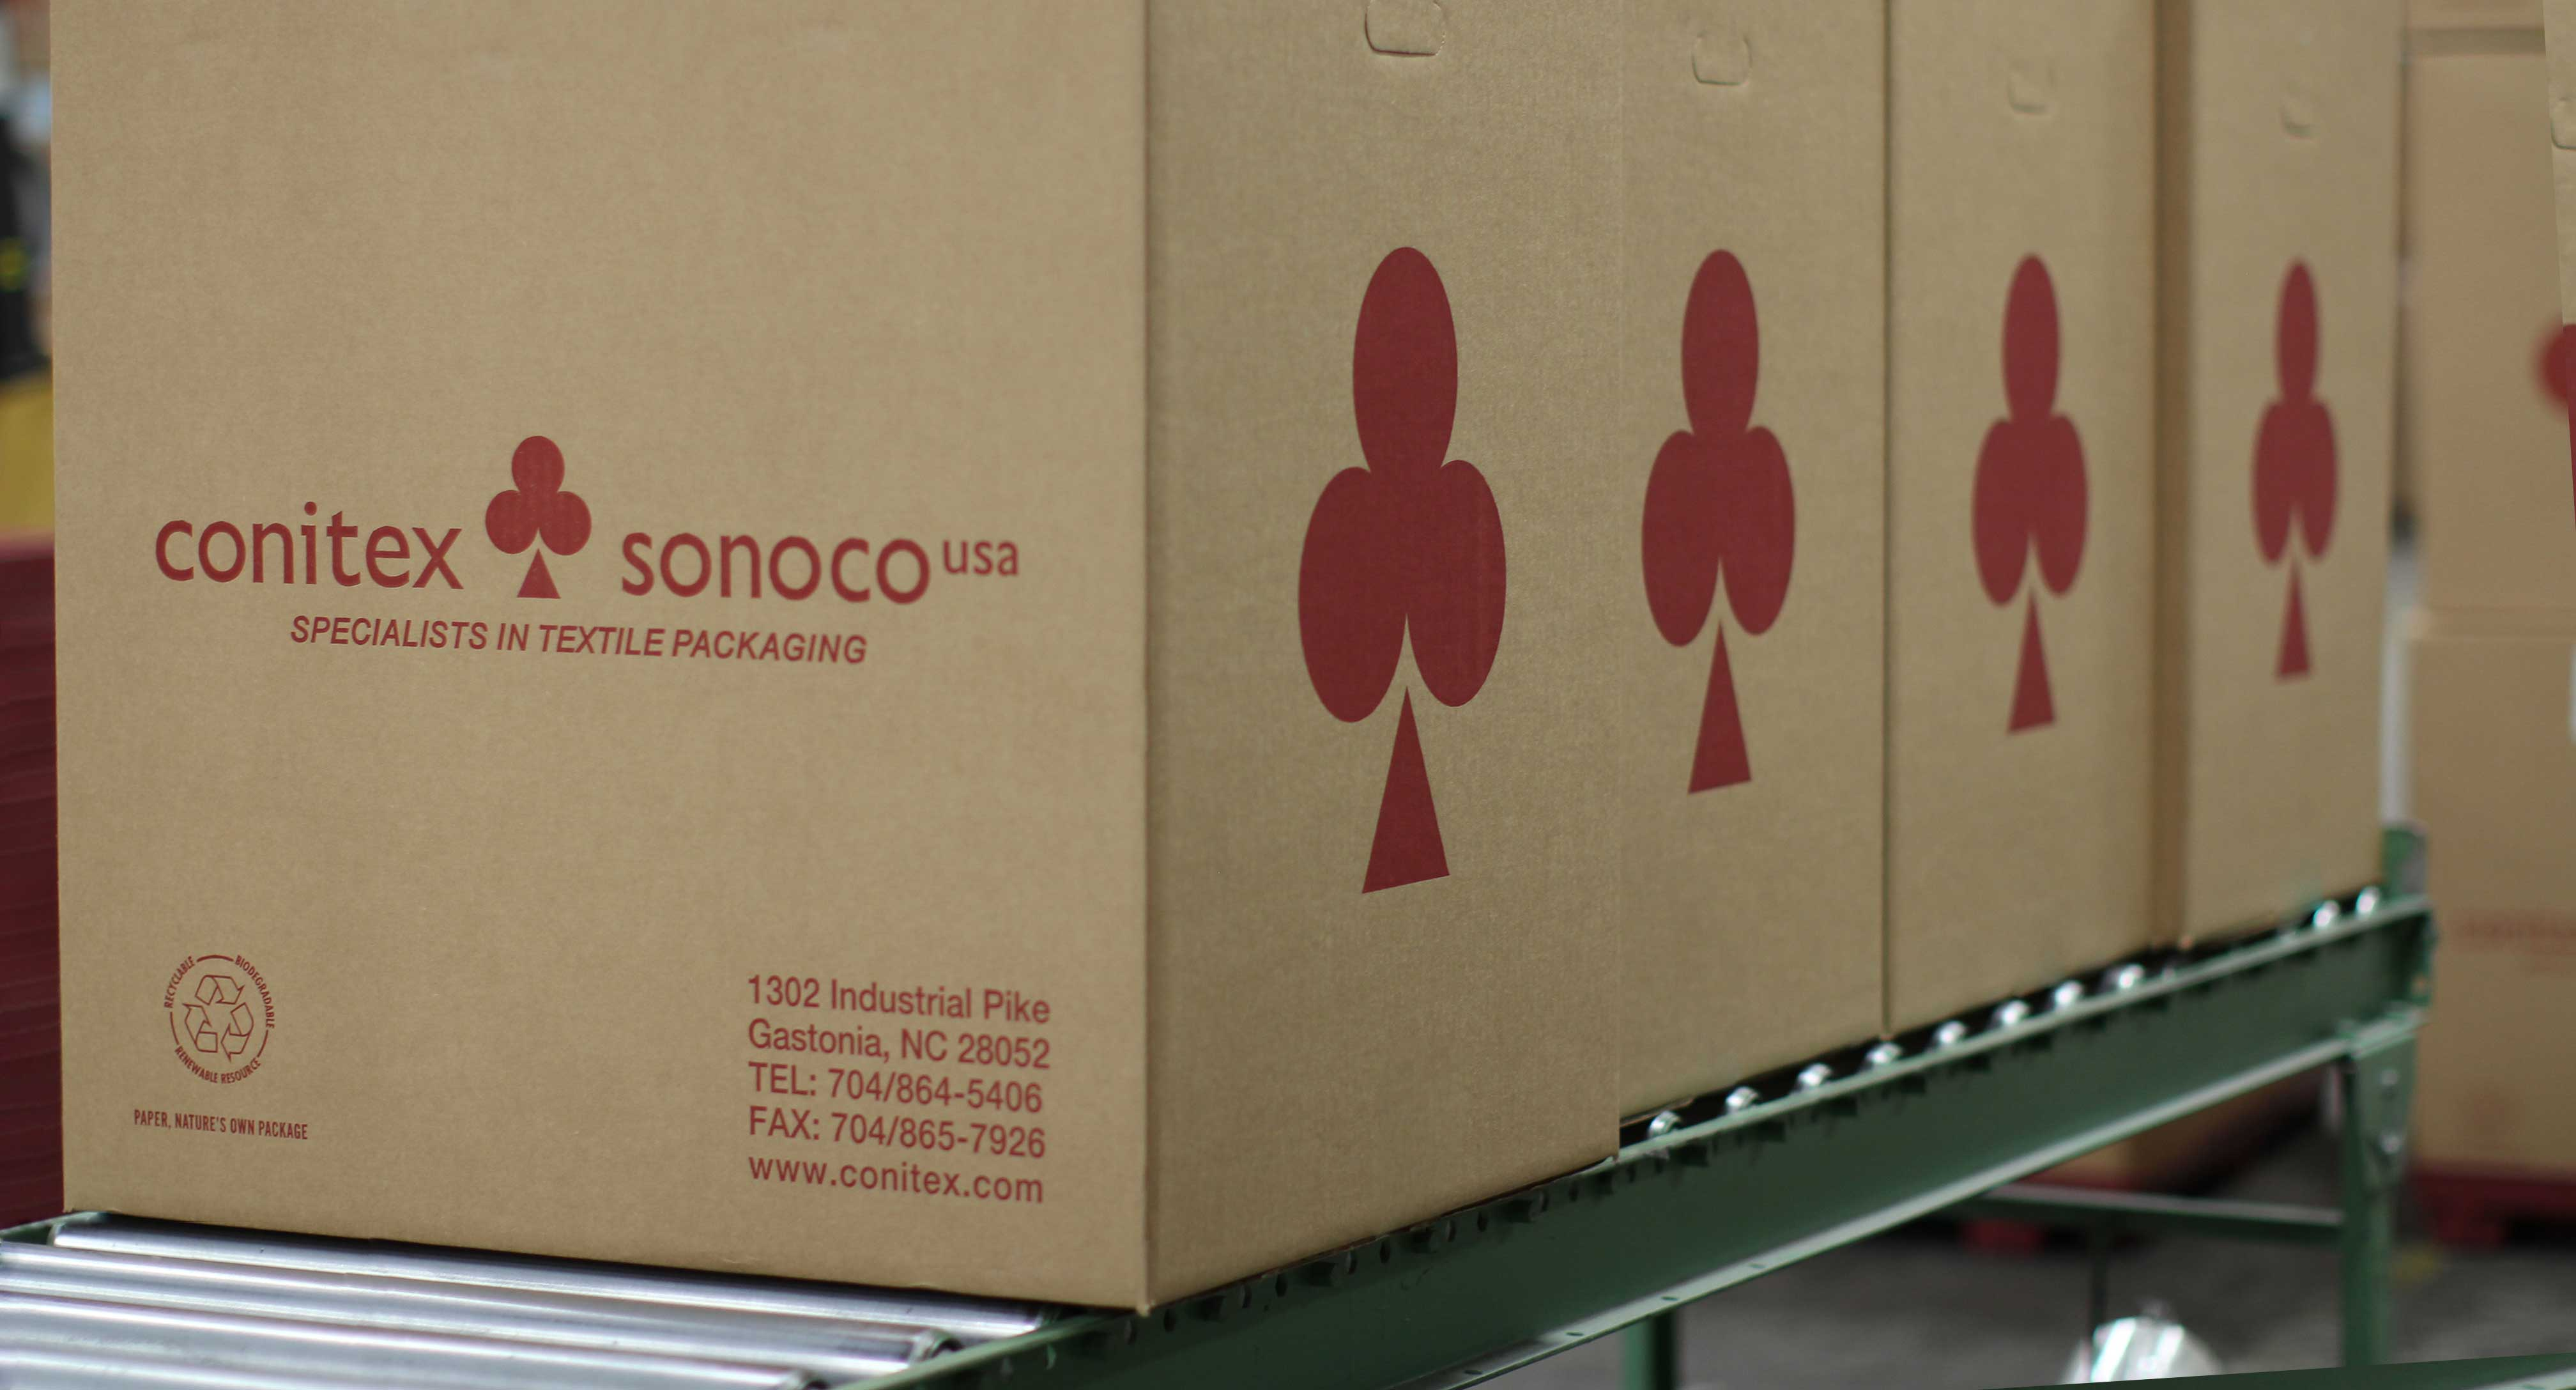 Innovative Packaging Products | Conitex Sonoco | Sustainable Packaging Solutions